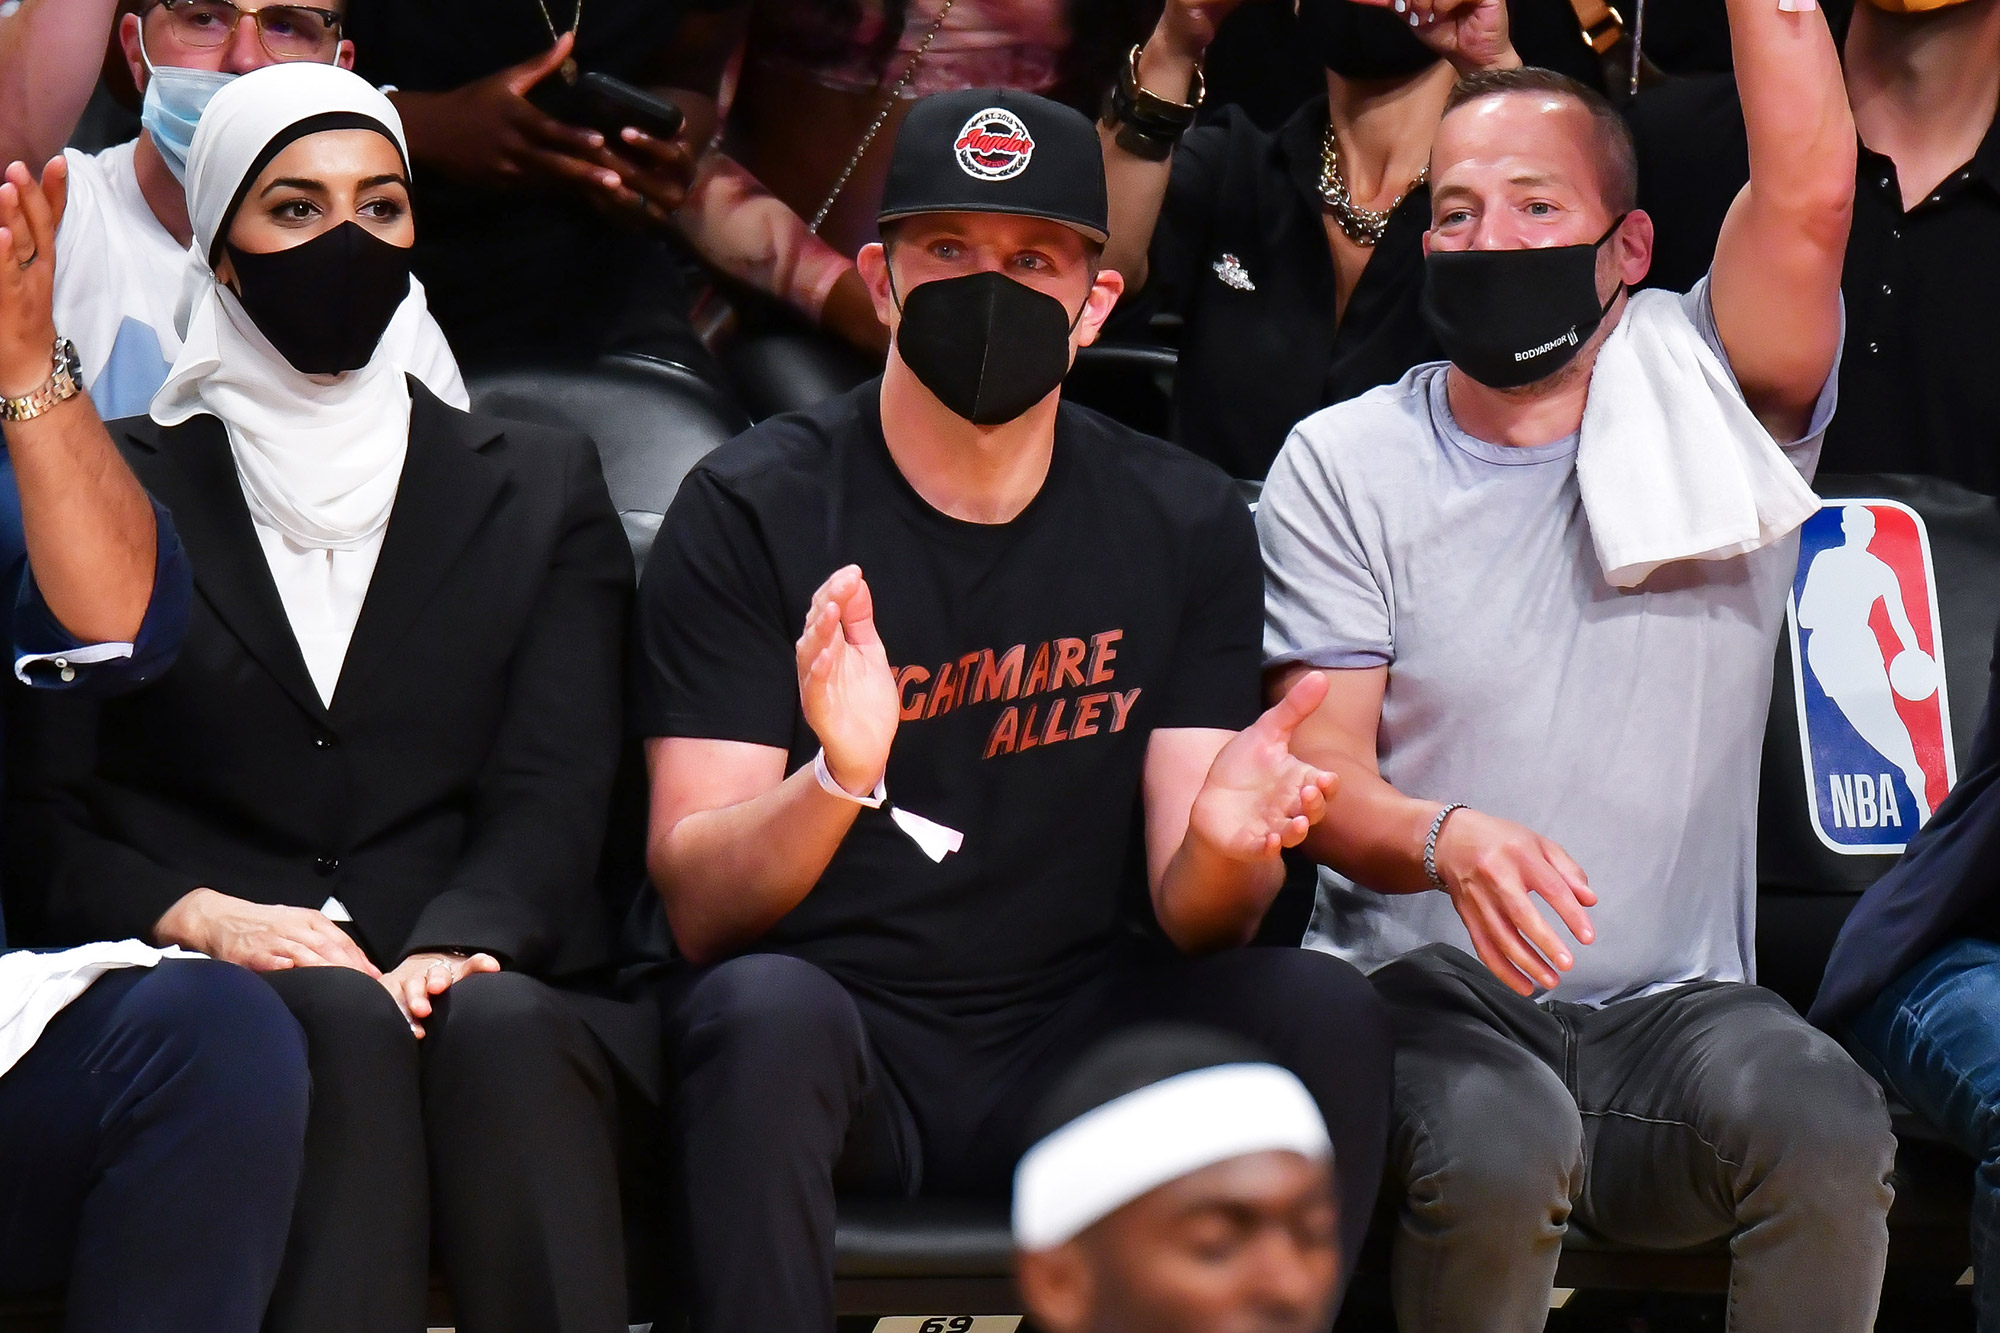 Bradley Cooper attends Brooklyn Nets v Milwaukee Bucks game at Barclays Center of Brooklyn on June 07, 2021 in New York City